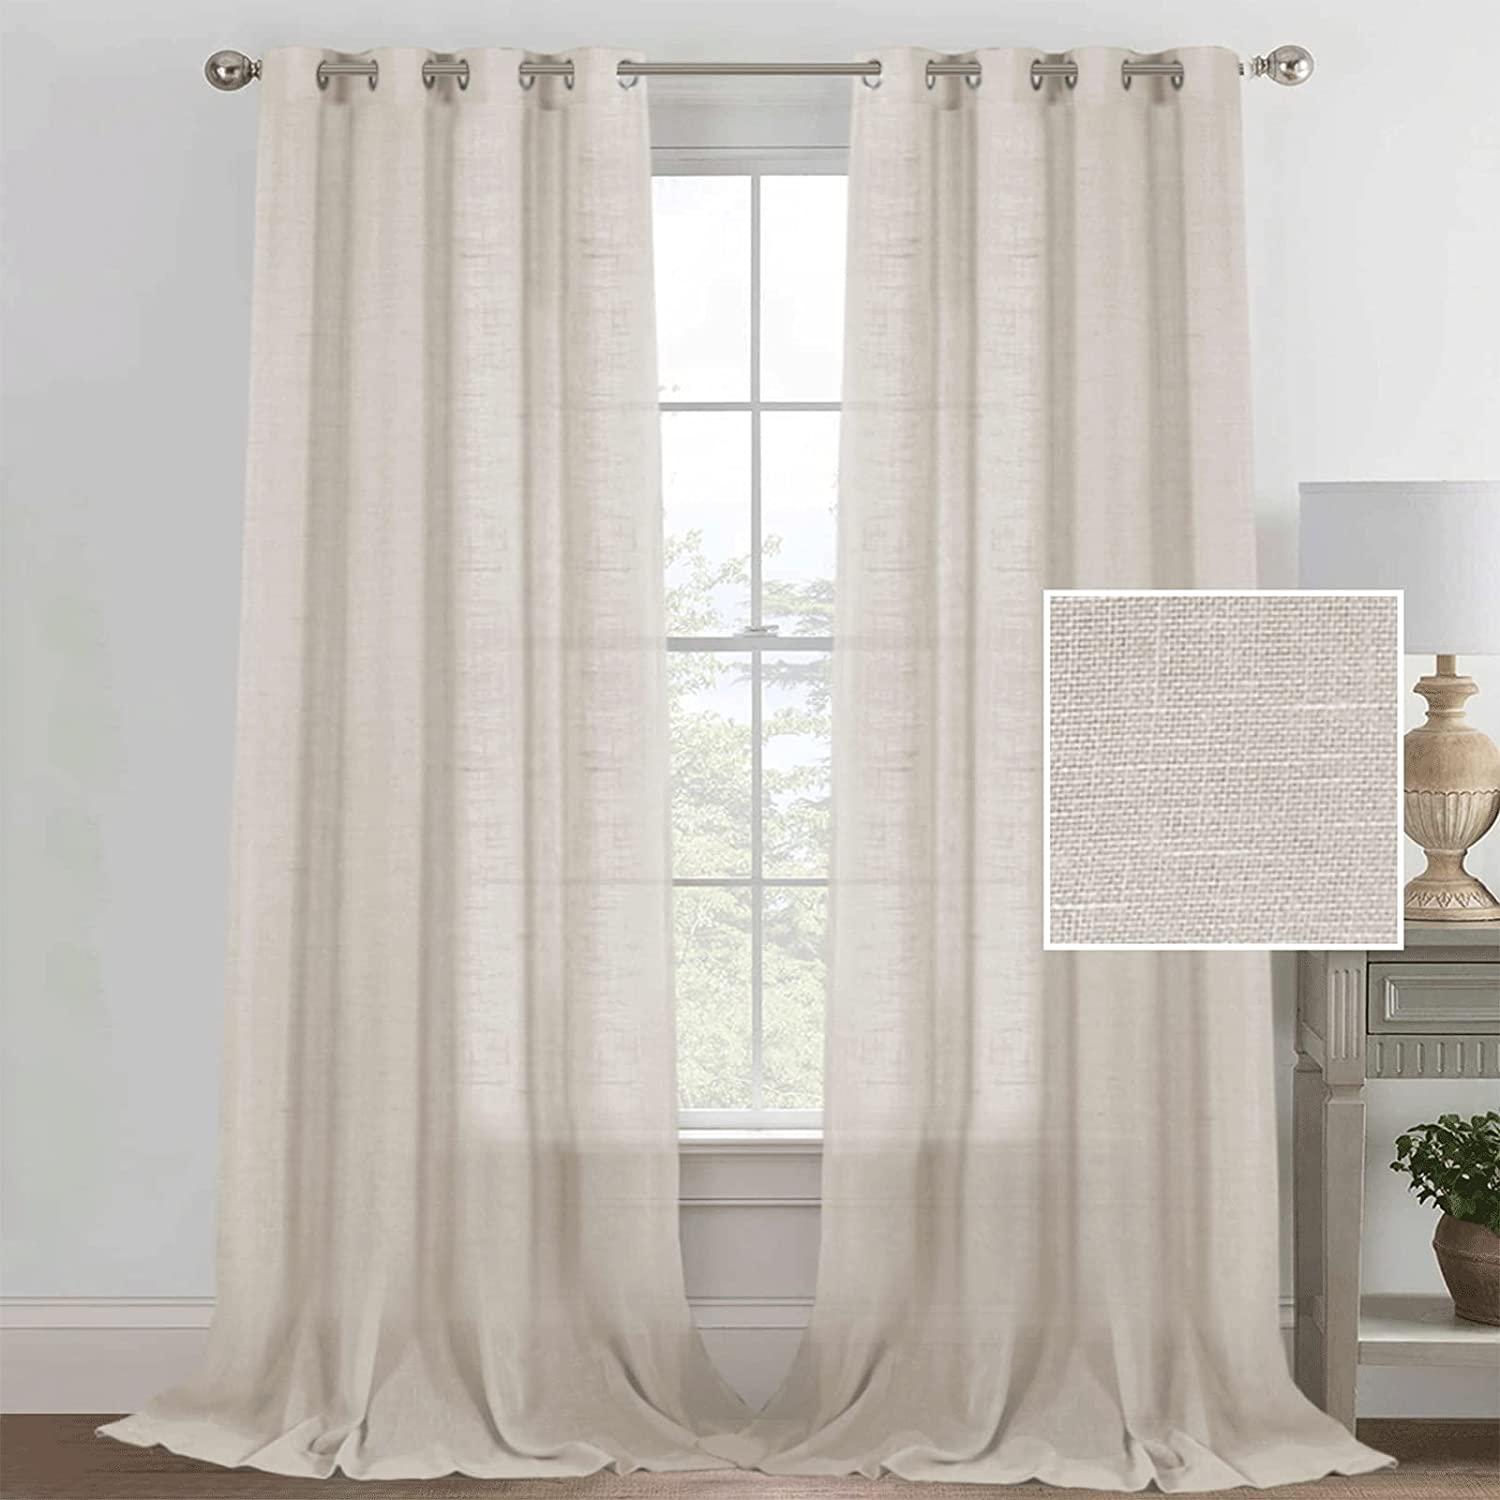 Now on sale QBV Curtains Linen Textured Casual Weave Curtain Room for Indianapolis Mall Living